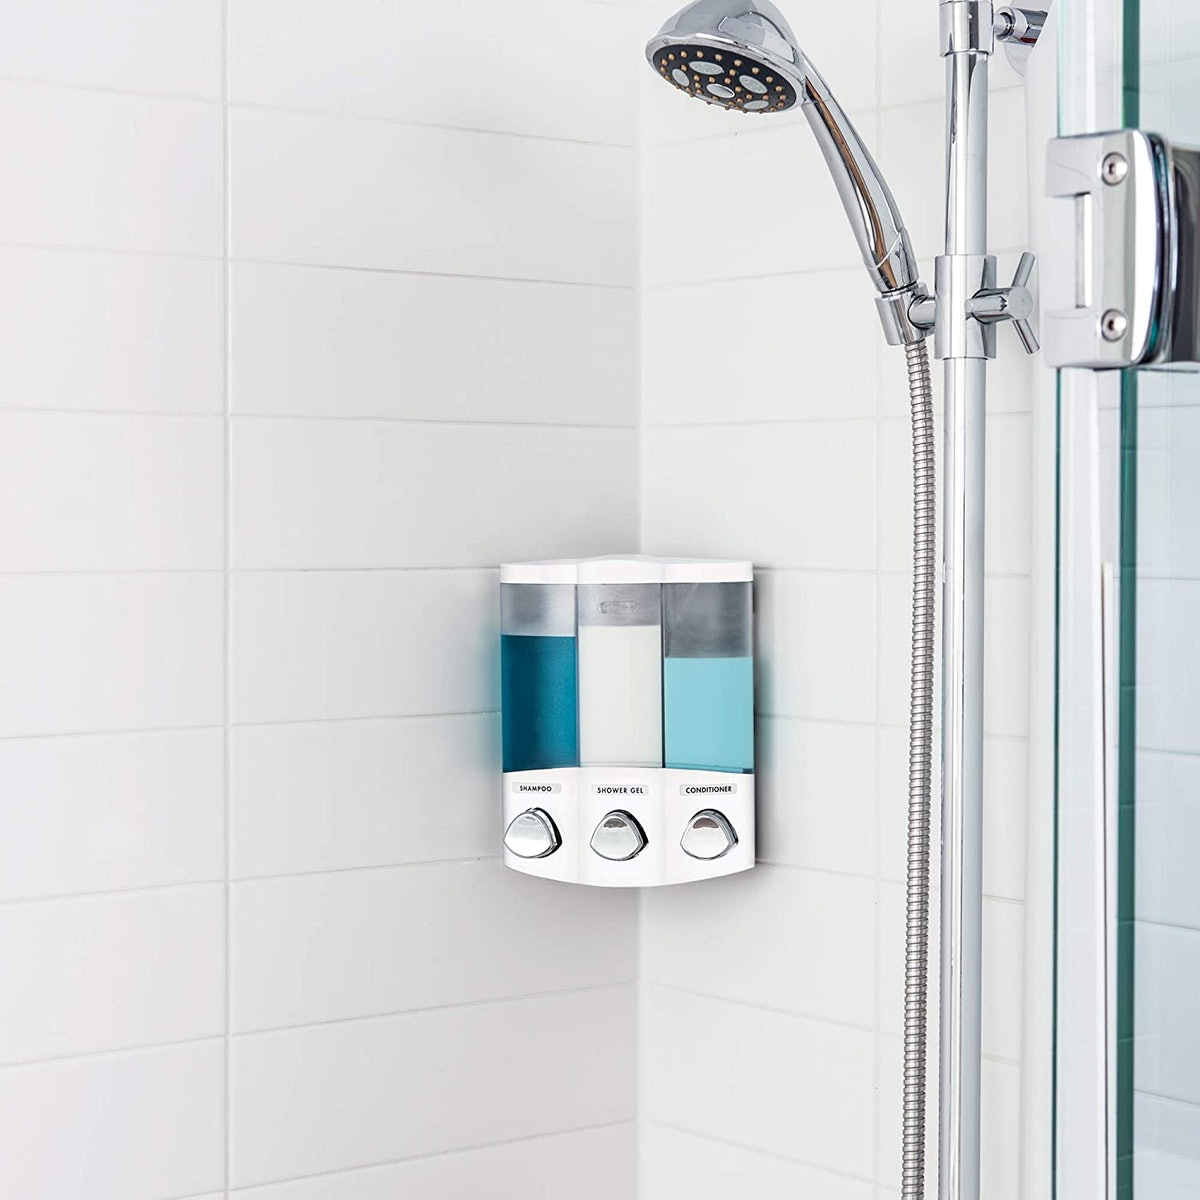 Better Living Products 3-Chamber Soap and Shower Dispenser